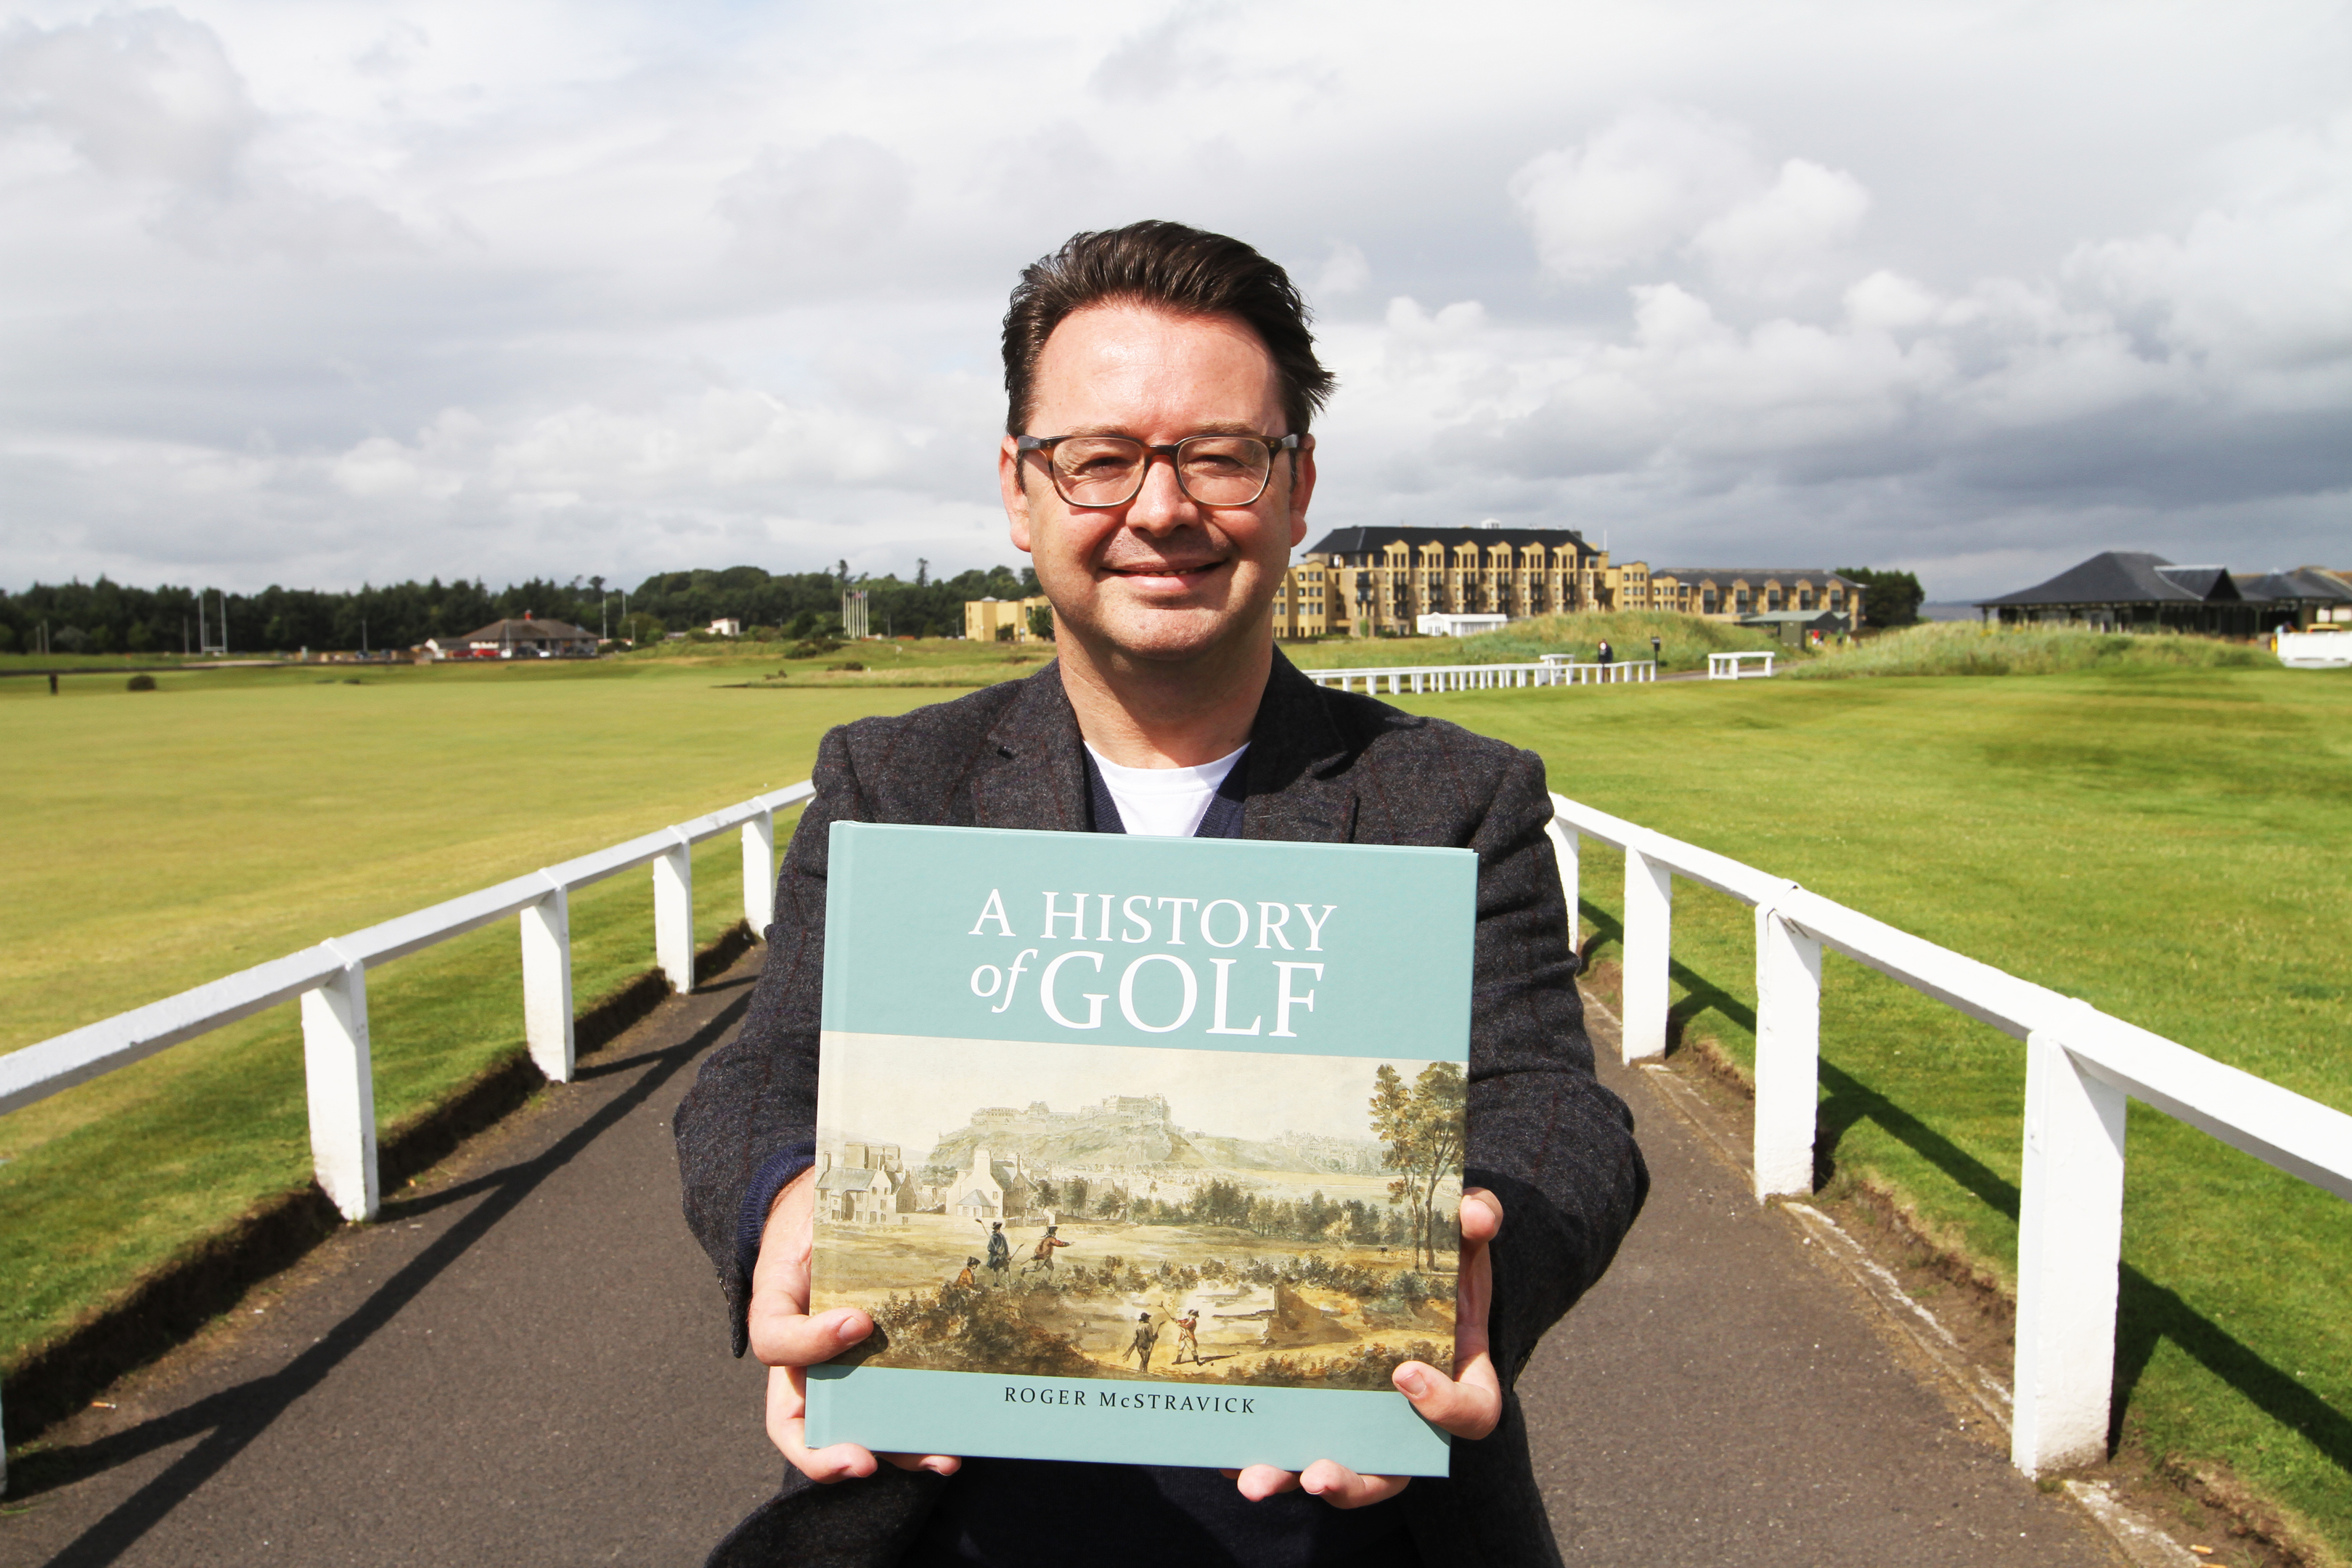 Roger McStravick's new book A History of Golf includes a suggestion that Mary Queen of Scots' recorded links to golf may not be accurate